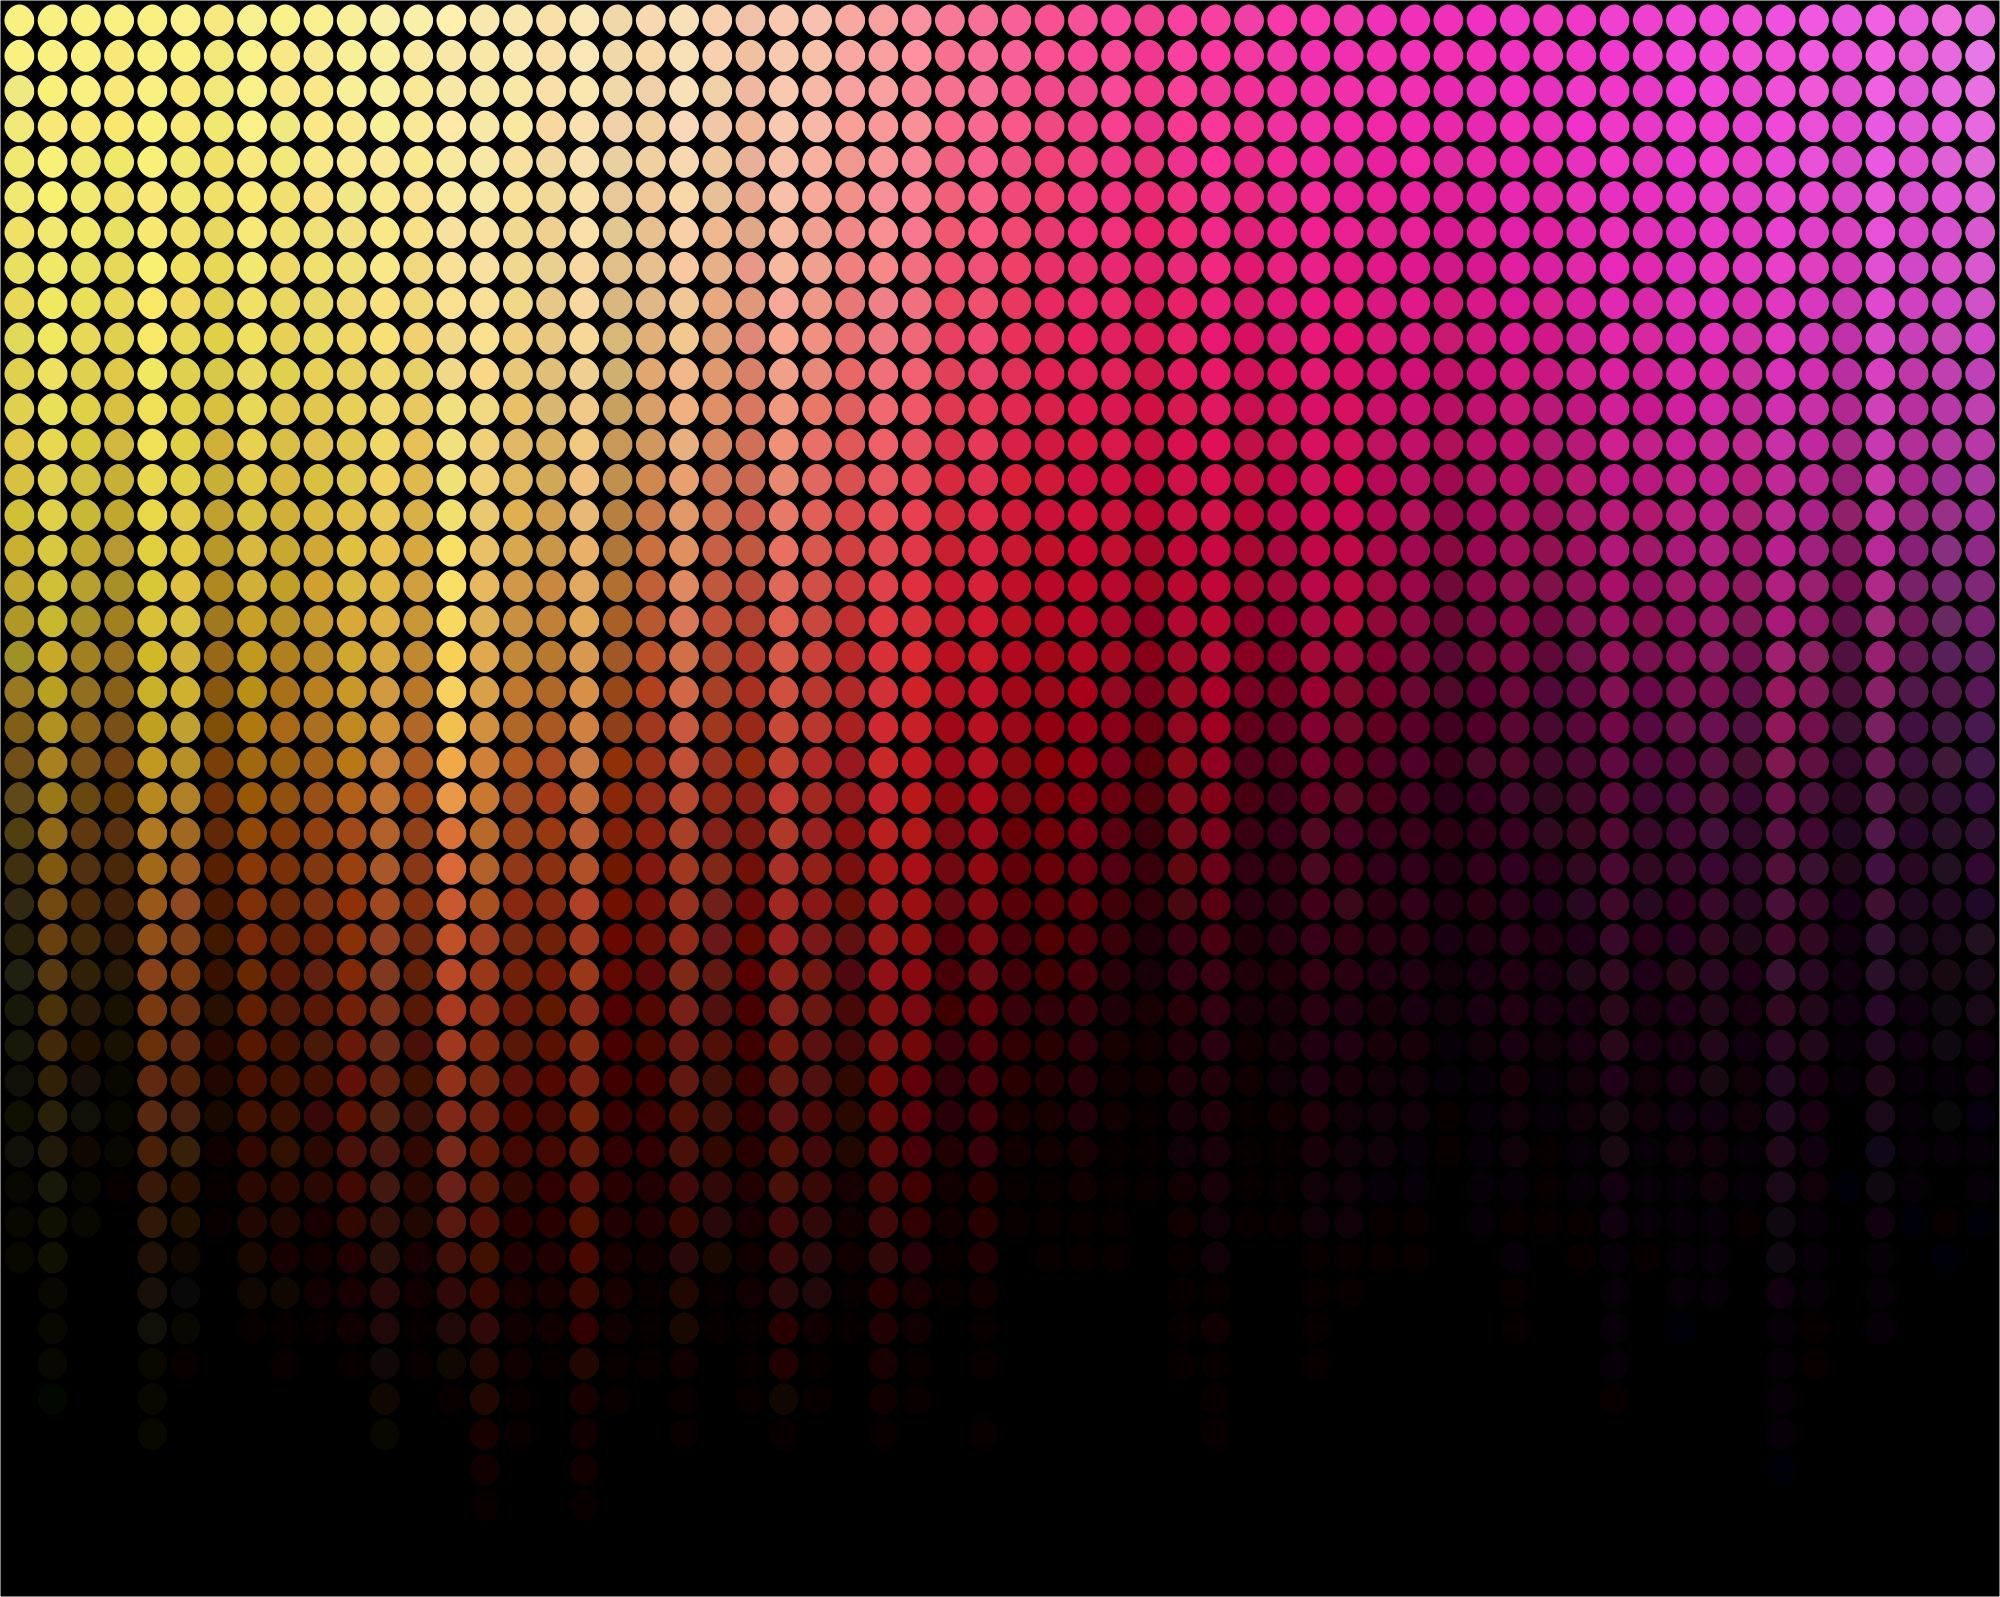 Free Vector Brilliant Neon Color Background Image 07 Vector Neon Backgrounds Vector Free Background Patterns